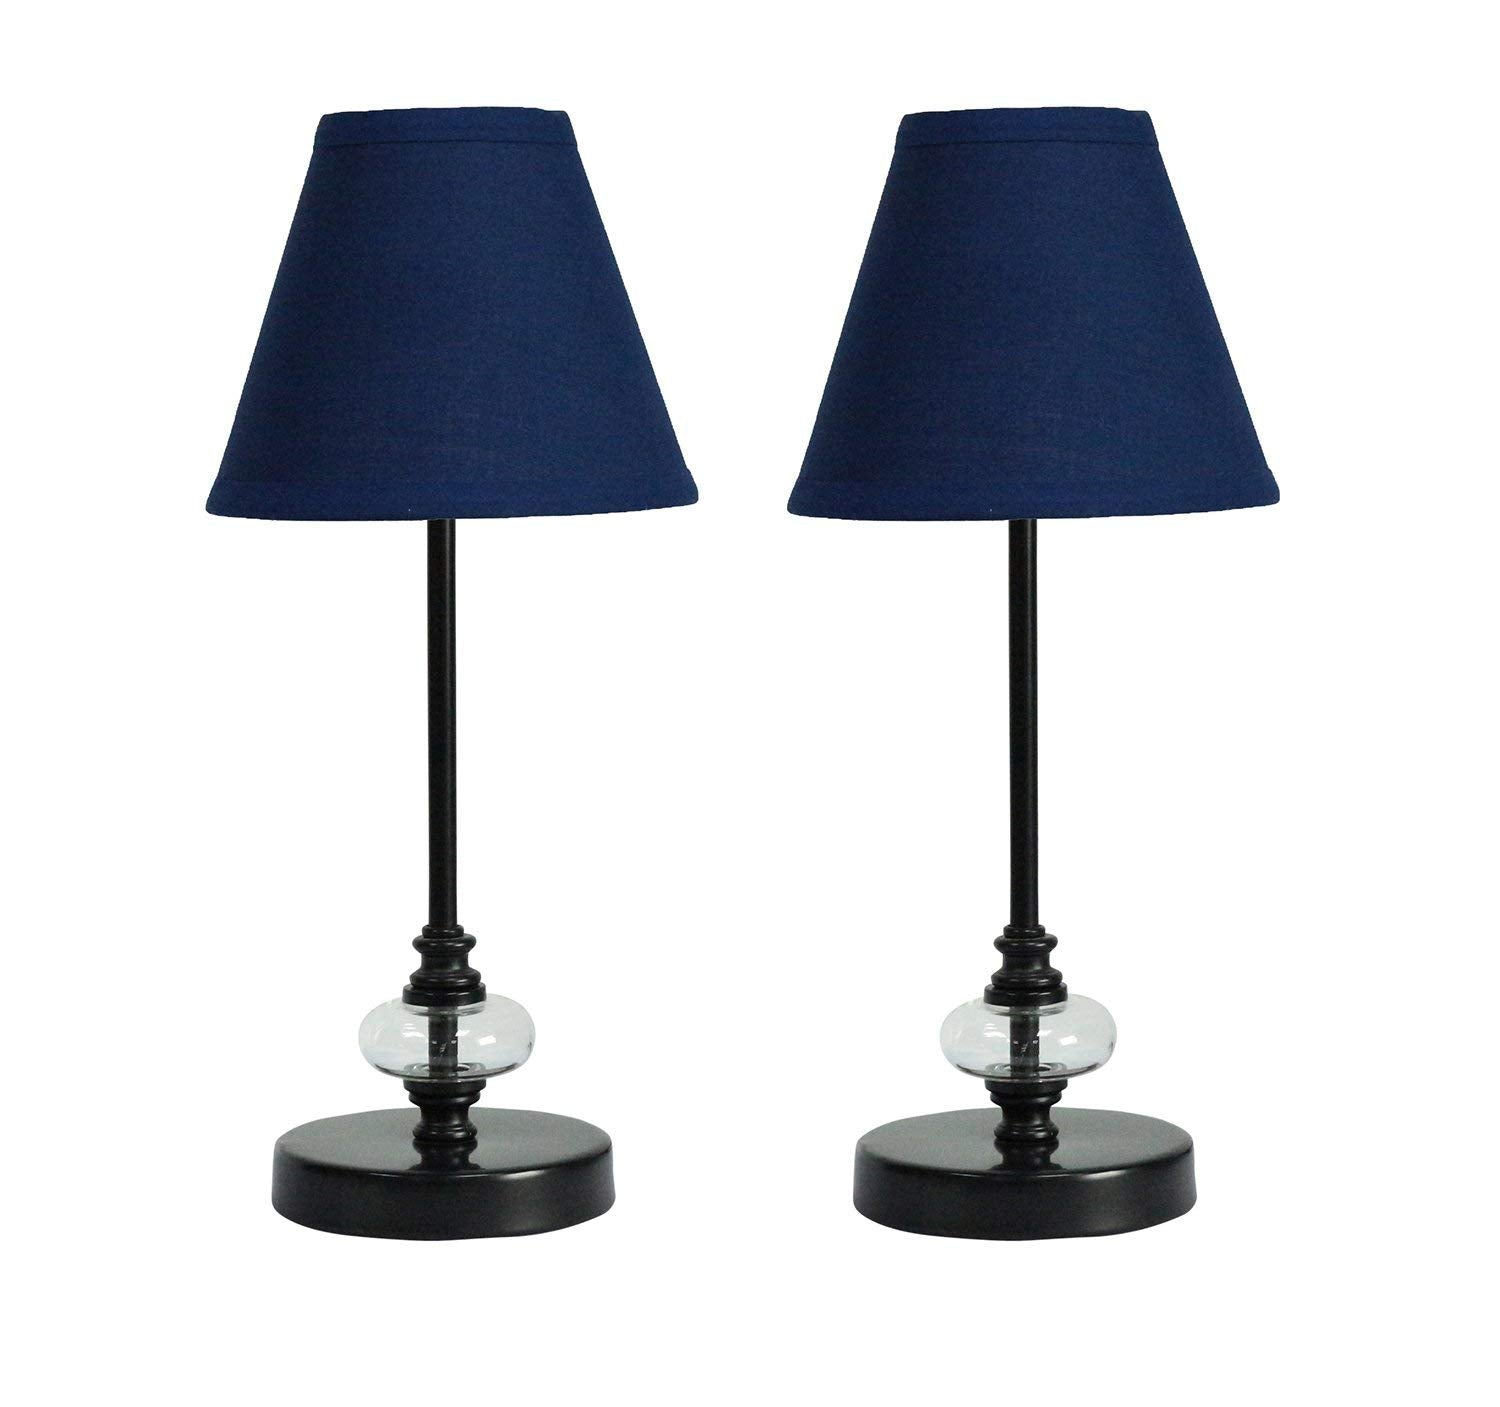 Urbanest Lucas Mini Accent Lamp - Set of 2